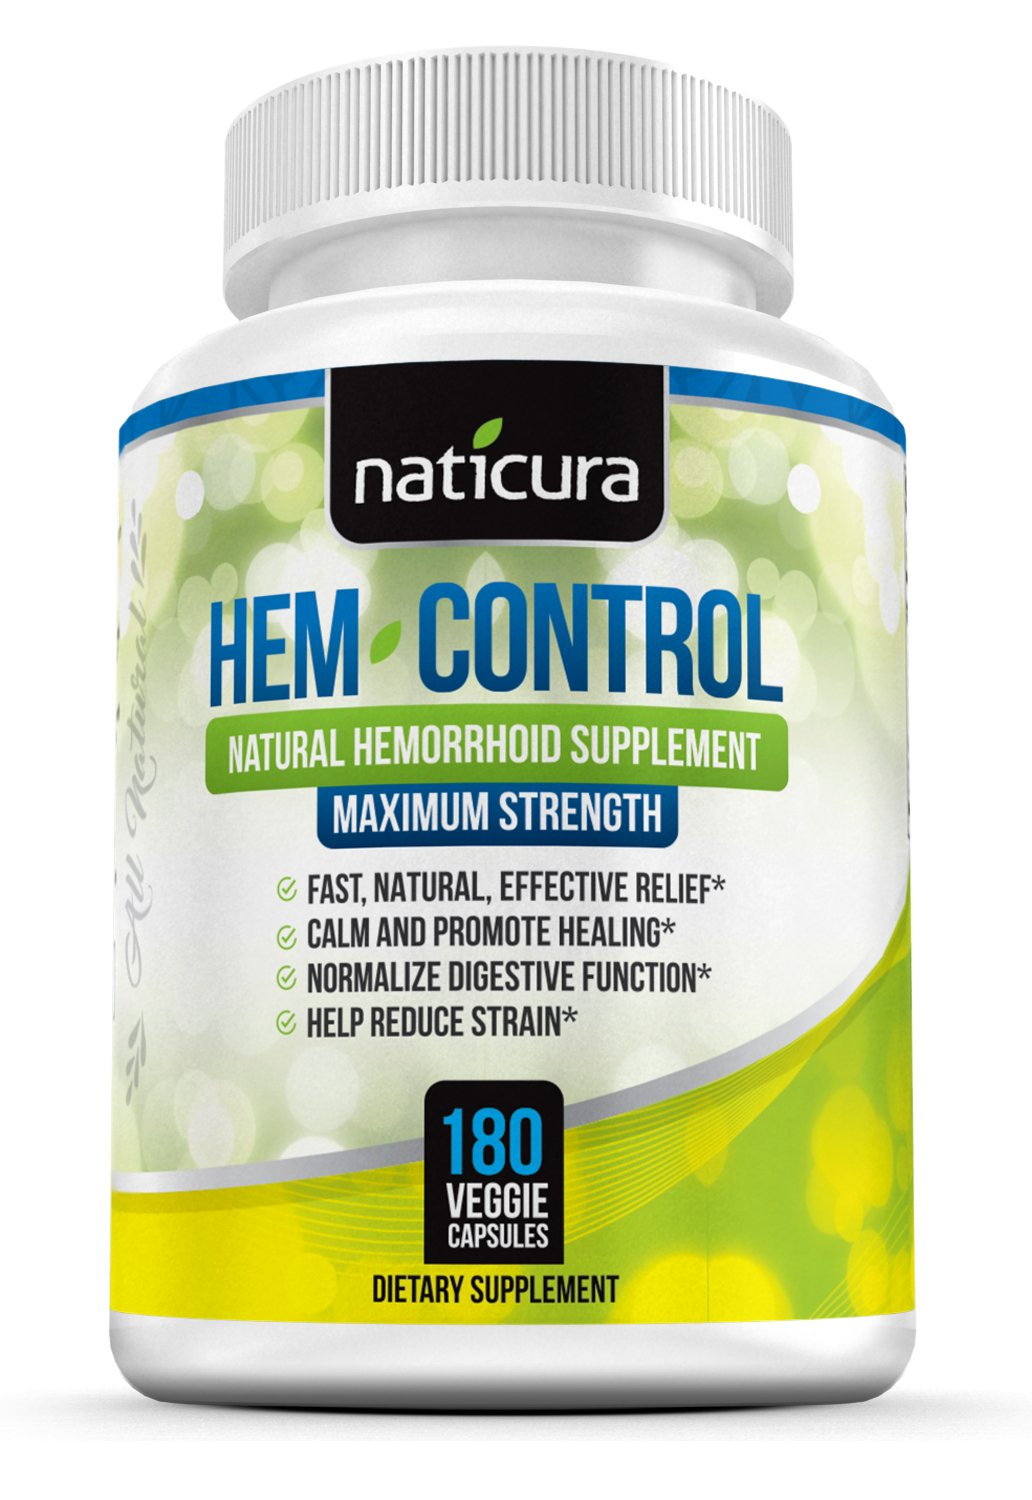 Naticura Hem-Control Herbal Hemorrhoid Remedy; 180 Capsules for Hemroid Pain Relief & Colon Health With Blond Psyllium Husk. Naturally Sourced. 2 Months Supply